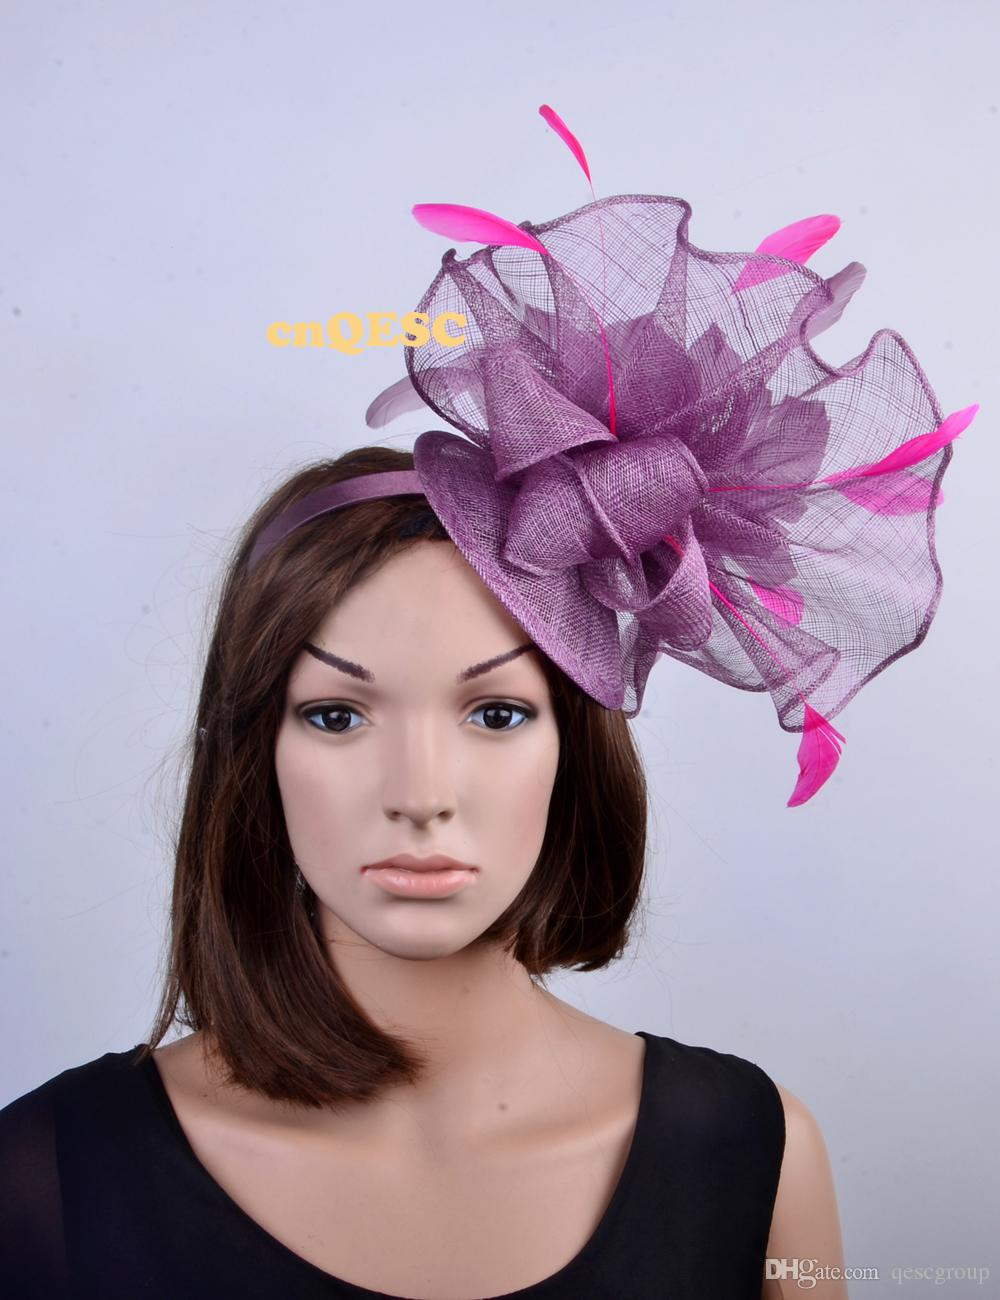 NEW heather purple hot pink Big Sinamay feather fascinator hat for kentucky derby,melbourne cup,ascot races,wedding party..